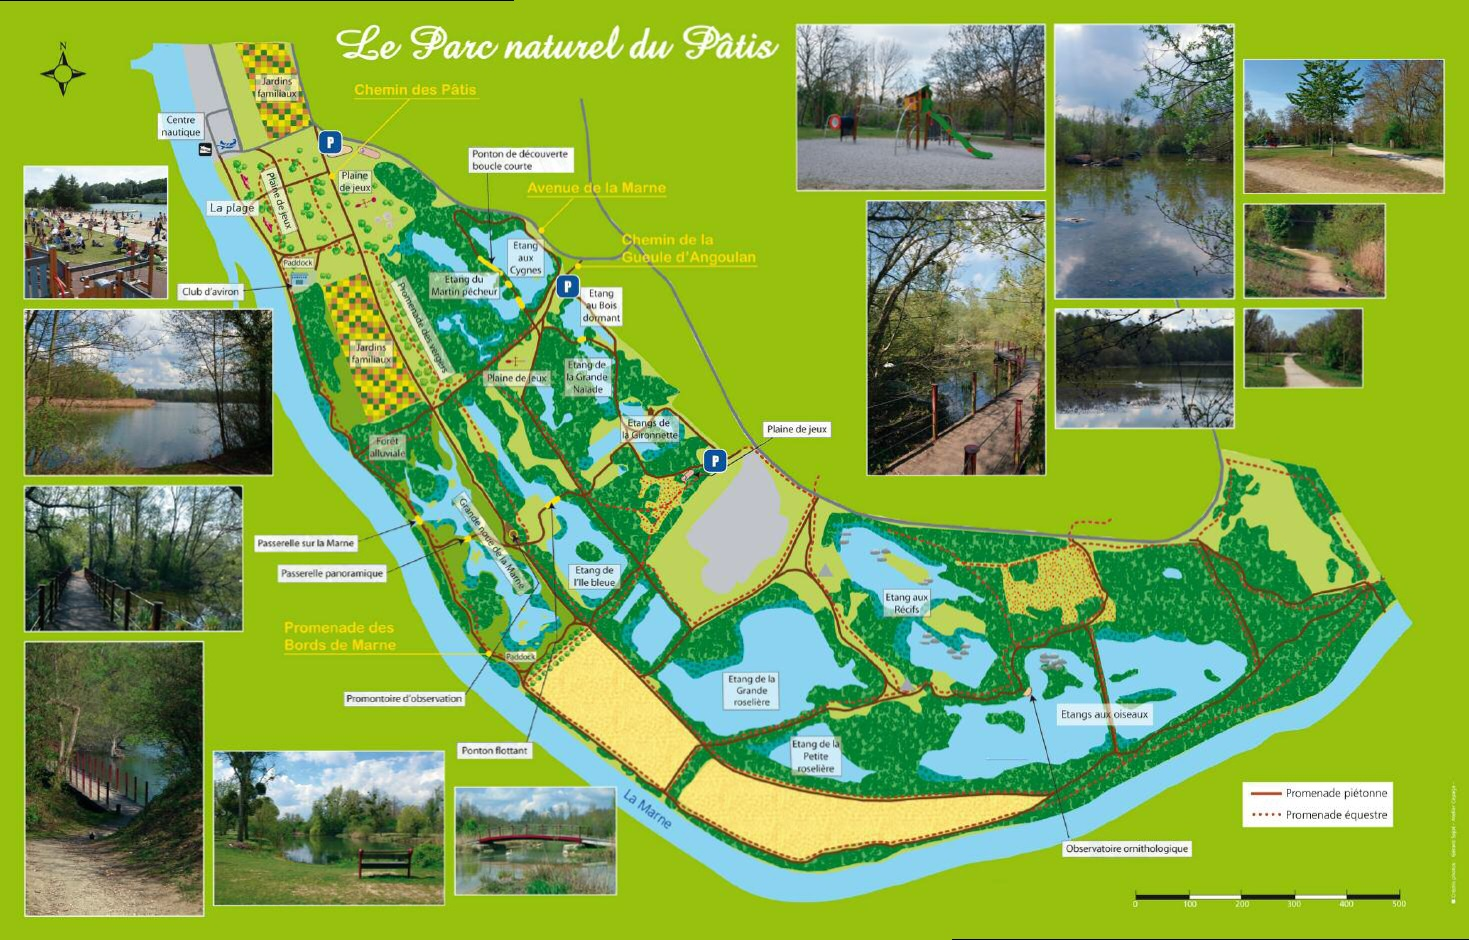 Plan parc du patis